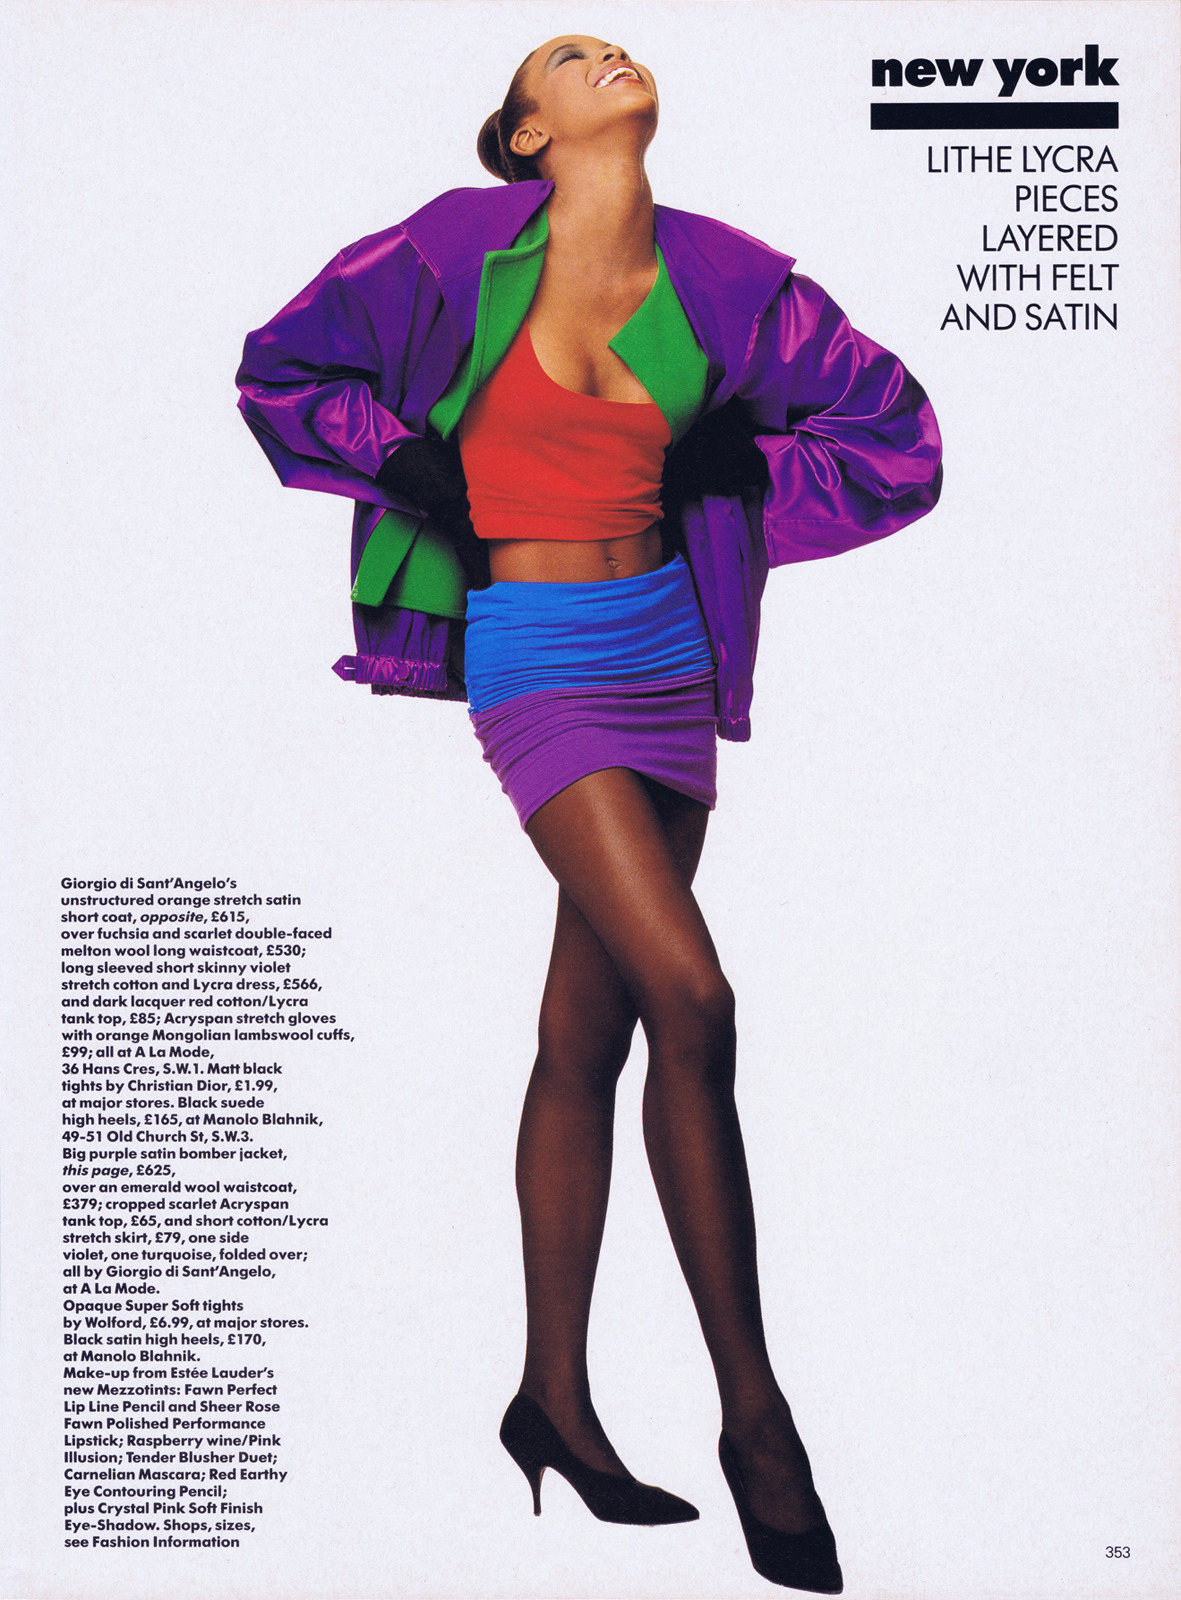 Naomi by Patrick Demarchelier, 1987